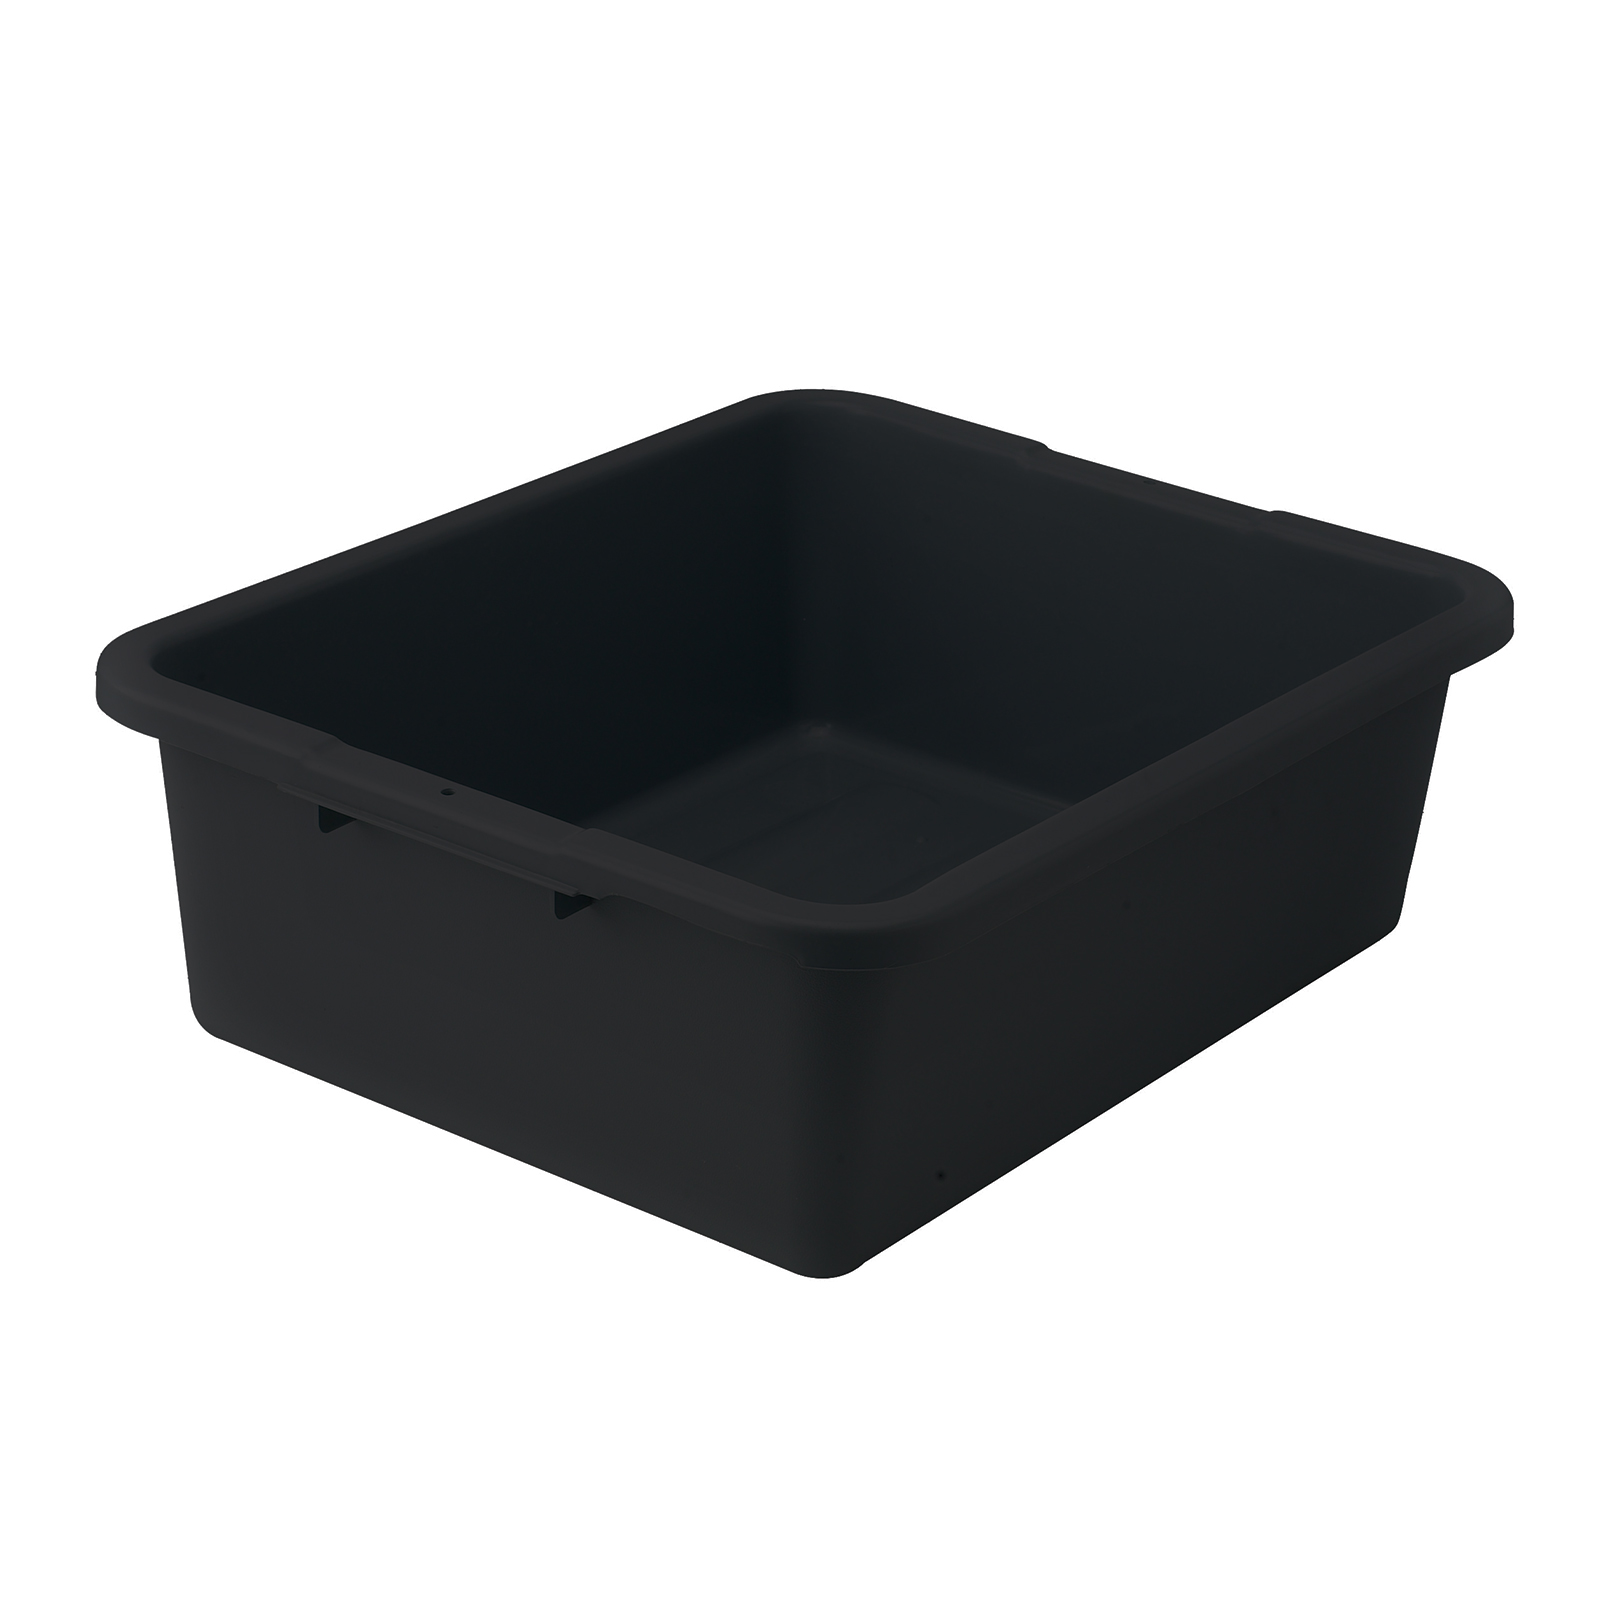 Winco PLW-7K bus box / tub